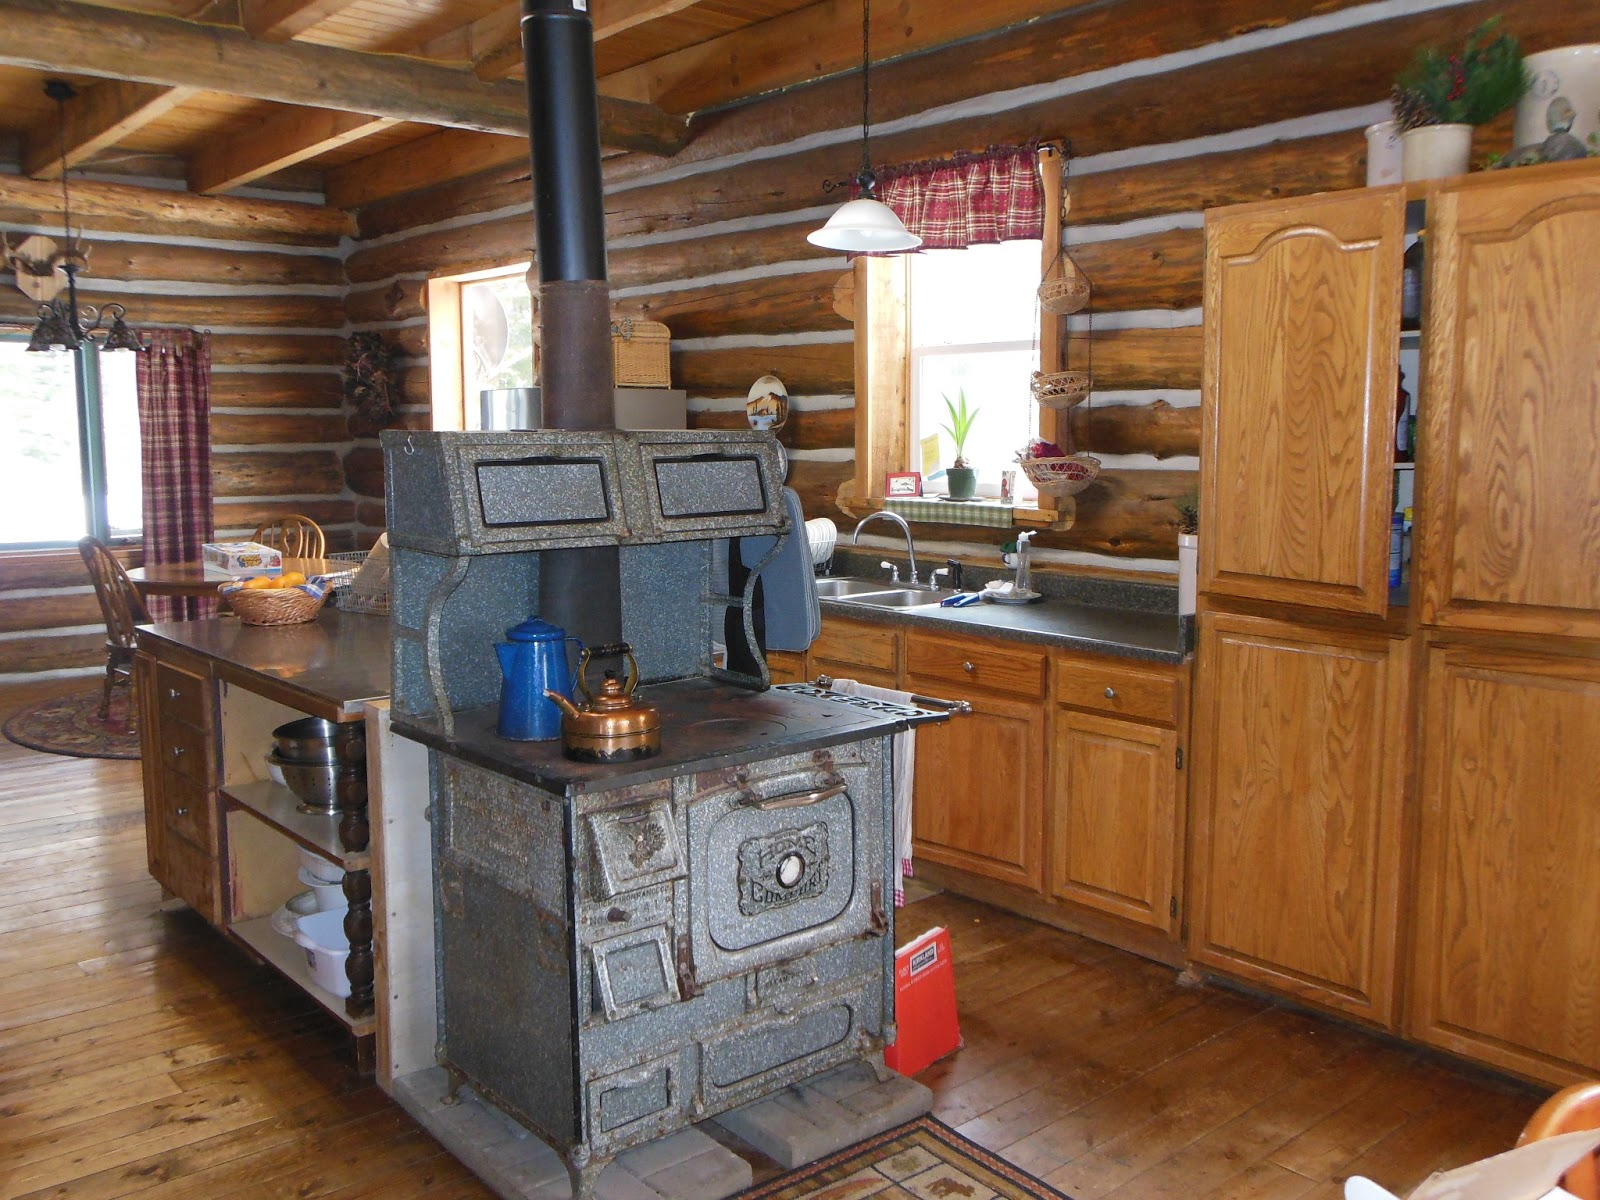 Kitchen Cook Stoves Island Sets Life At Providence Lodge Log Home Tour Part 2